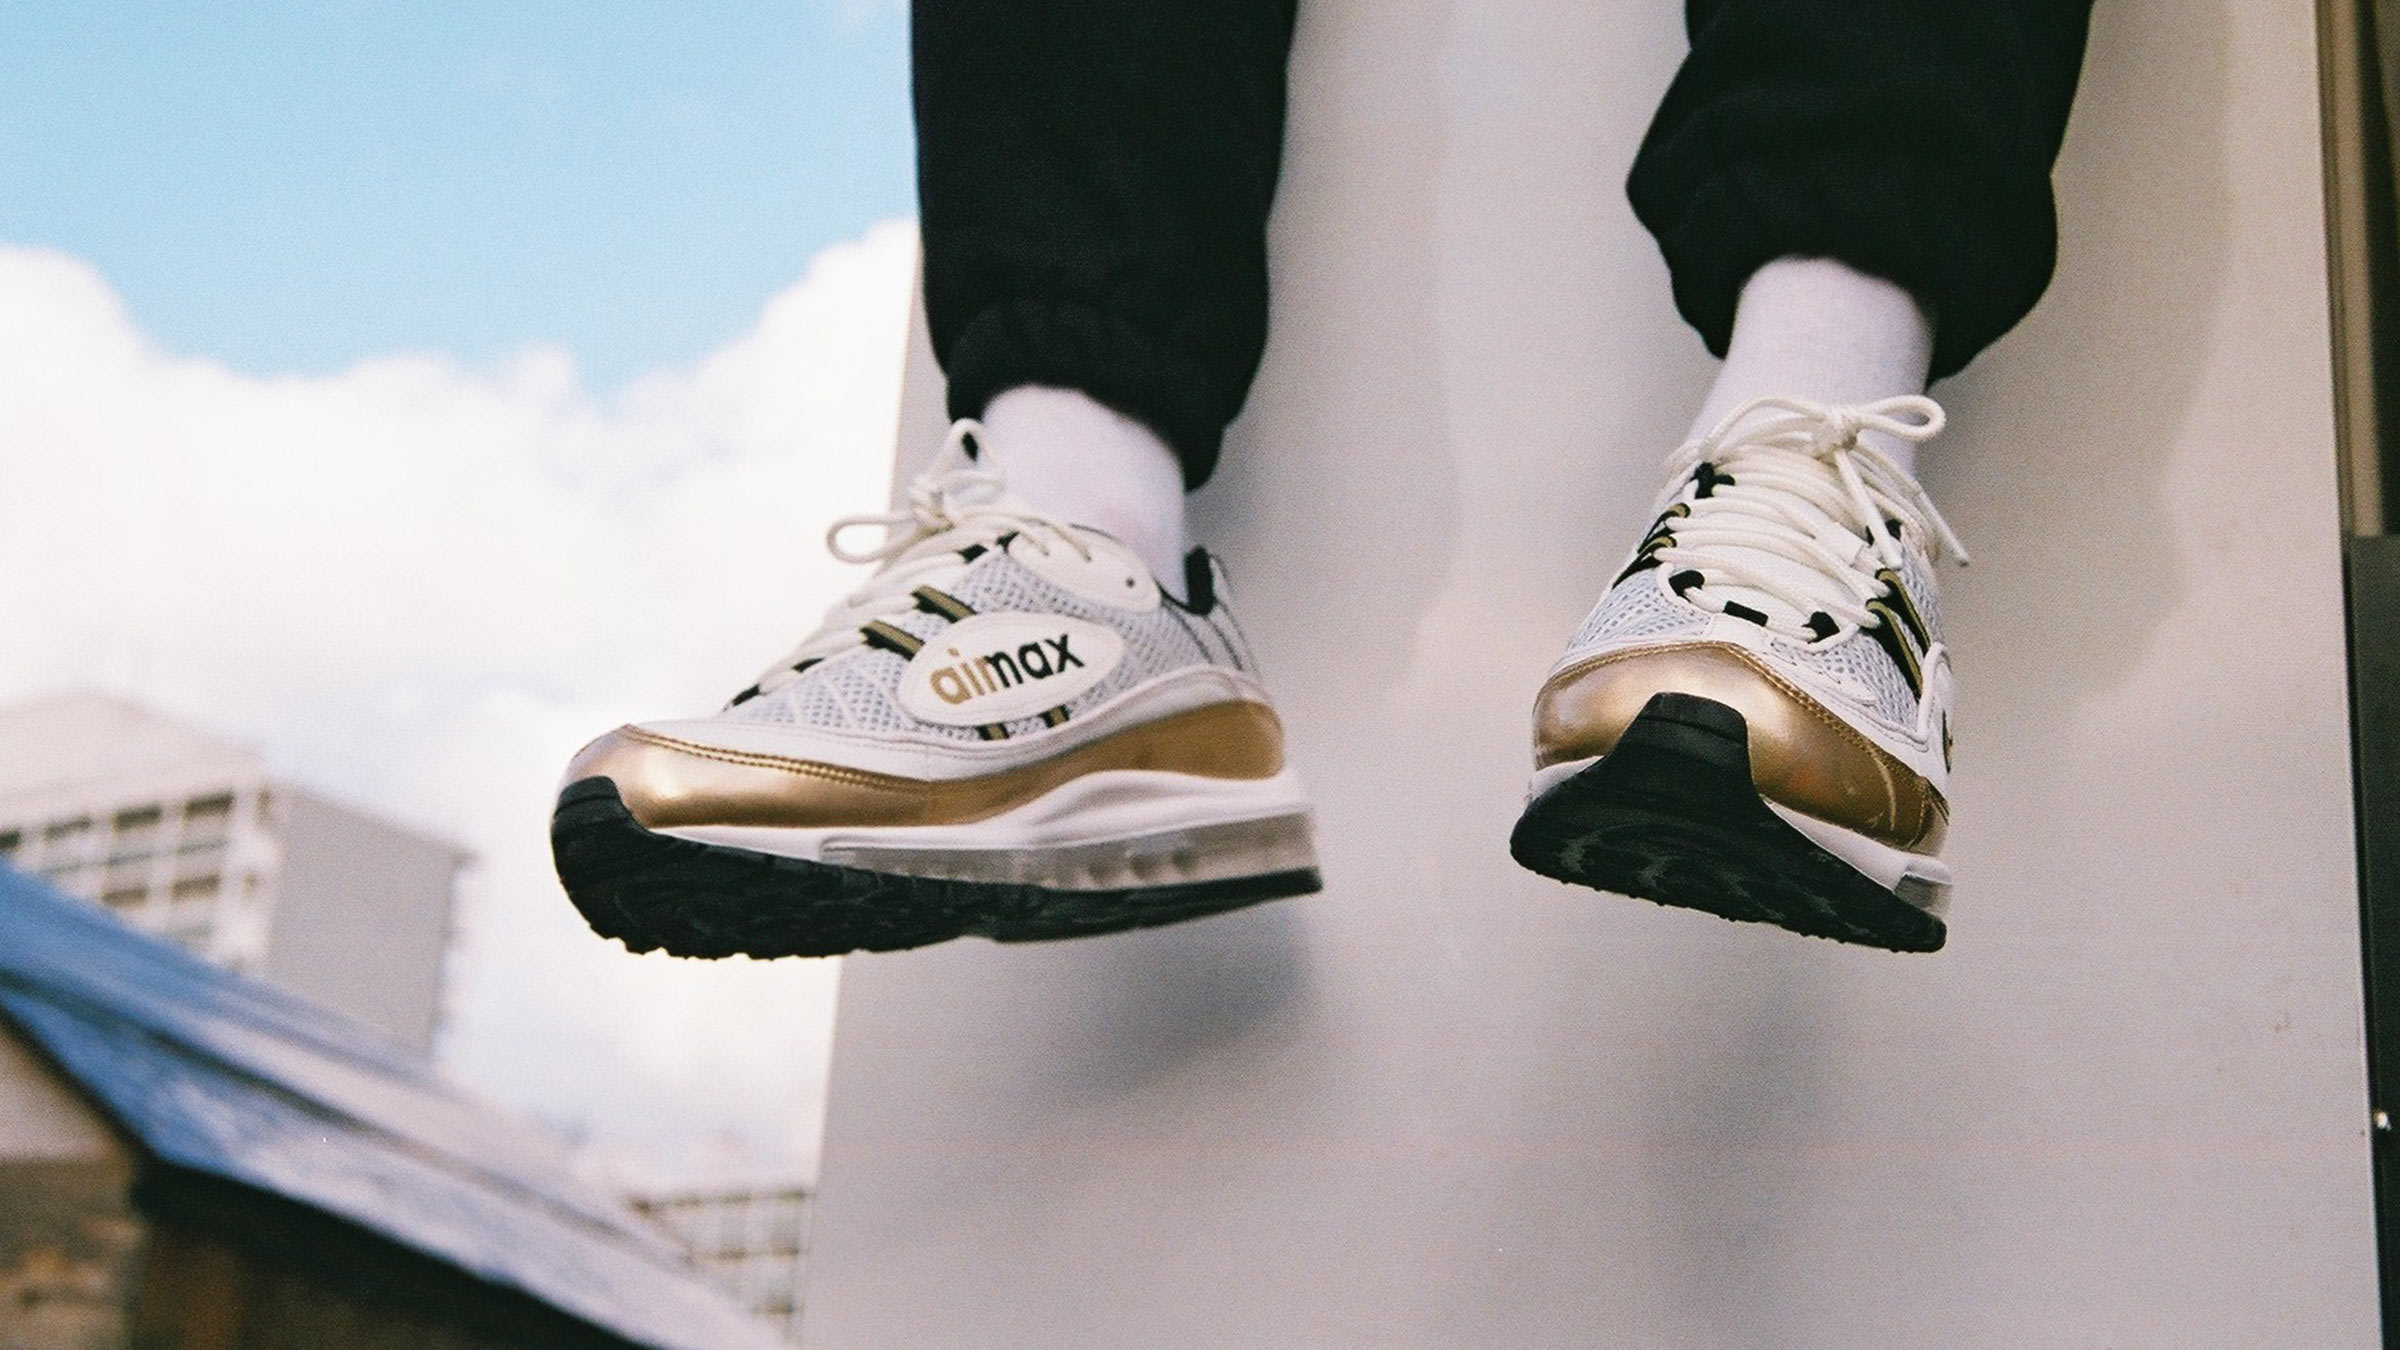 eca35243ba ... nike air max 98 uk gmt. summit white metallic gold149. in full effect  for